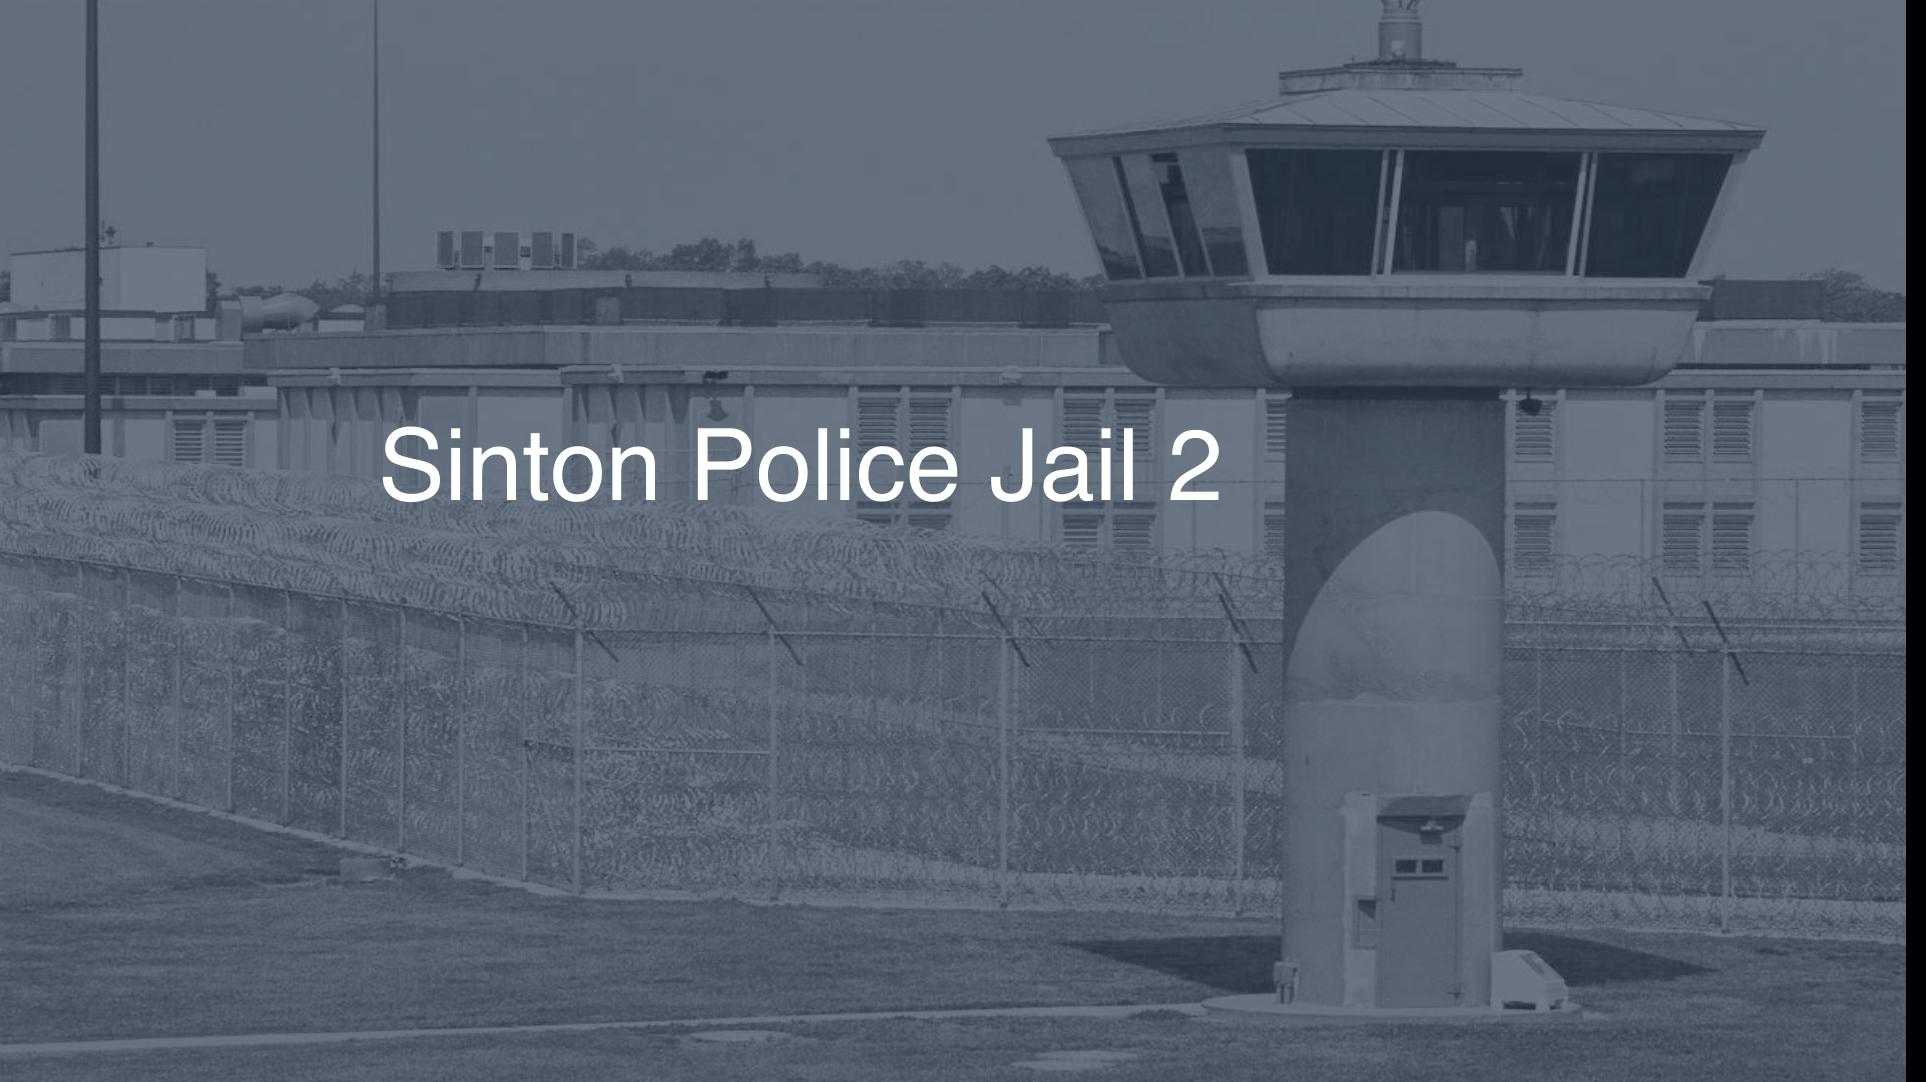 Sinton Police Jail correctional facility picture